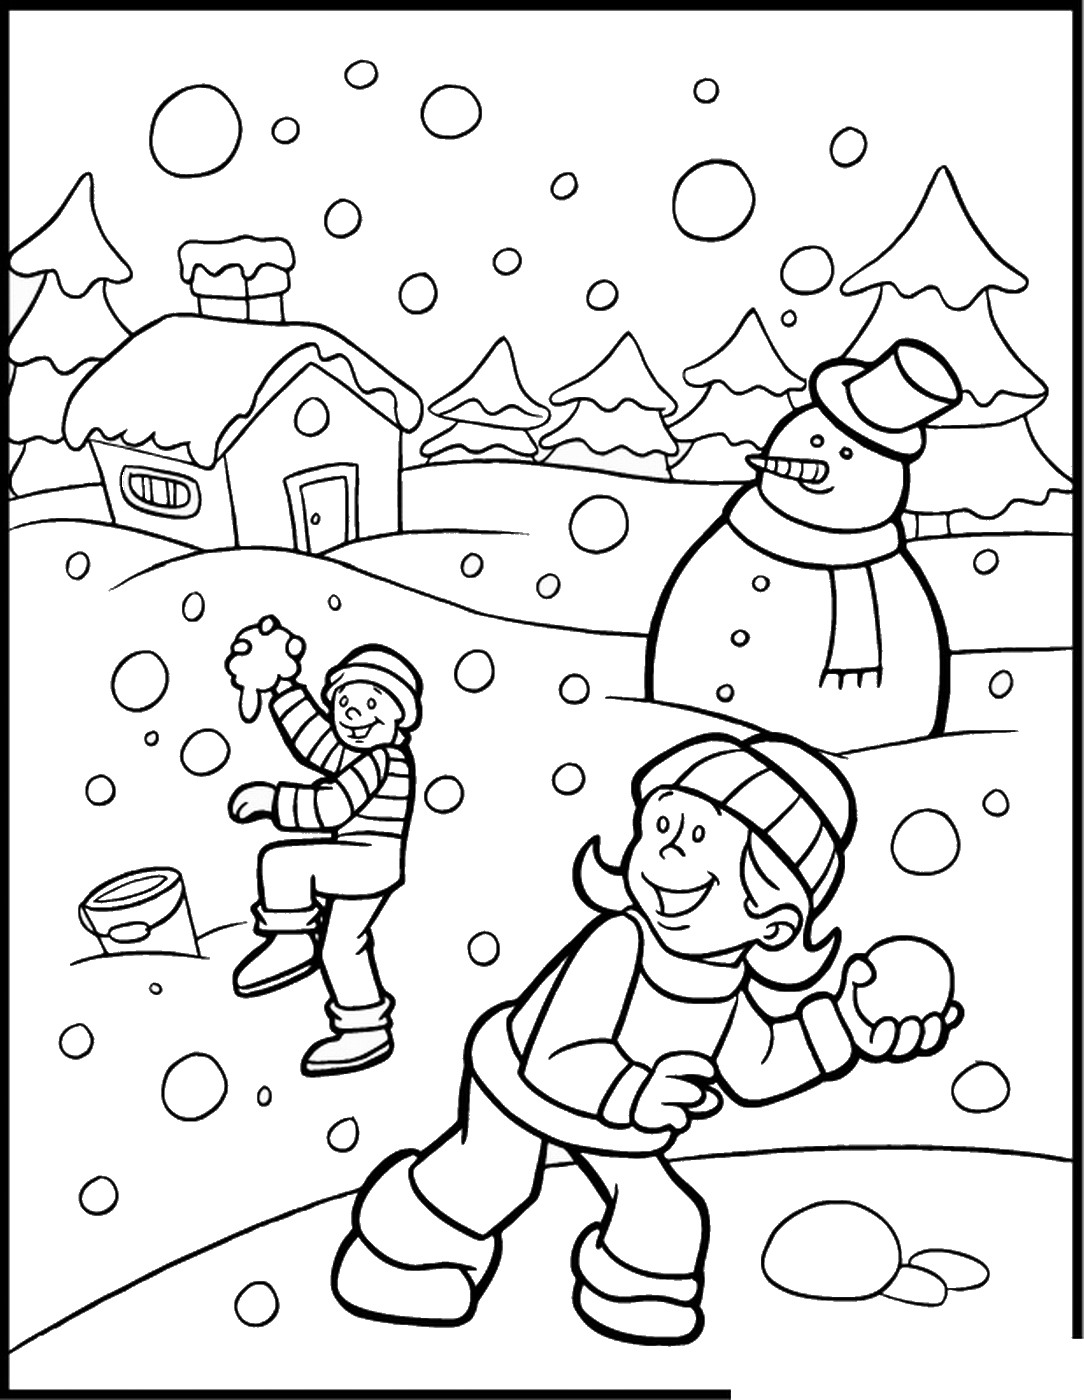 seasons coloring pages 4 seasons drawing at getdrawings free download pages coloring seasons